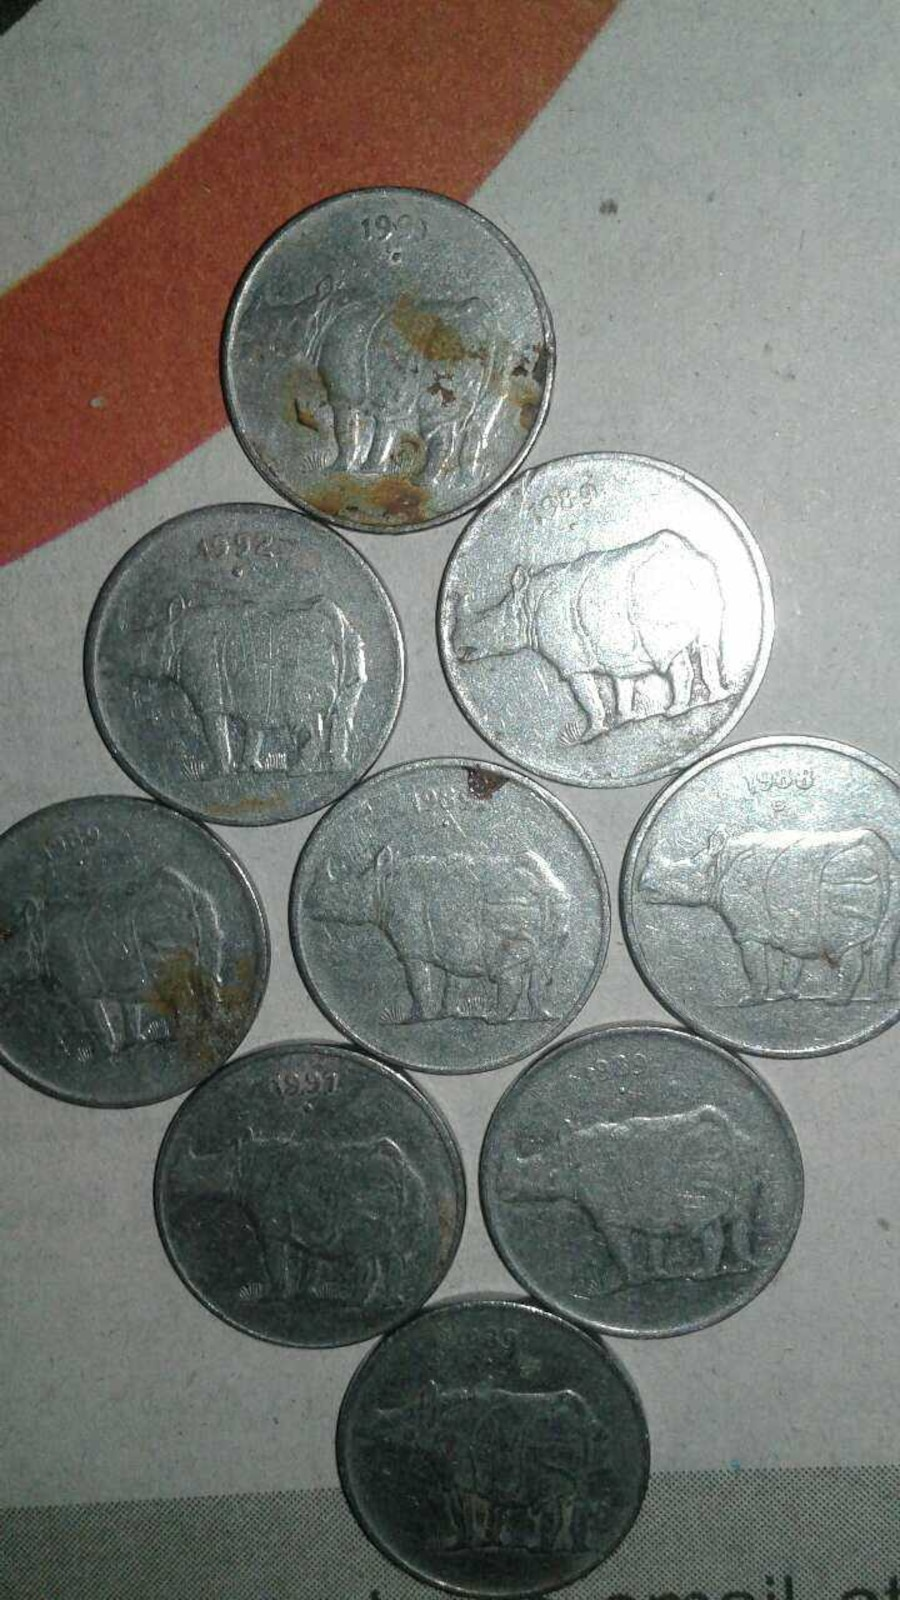 TOTAL COIN ONLY RS 150000 - ₹1,50,000